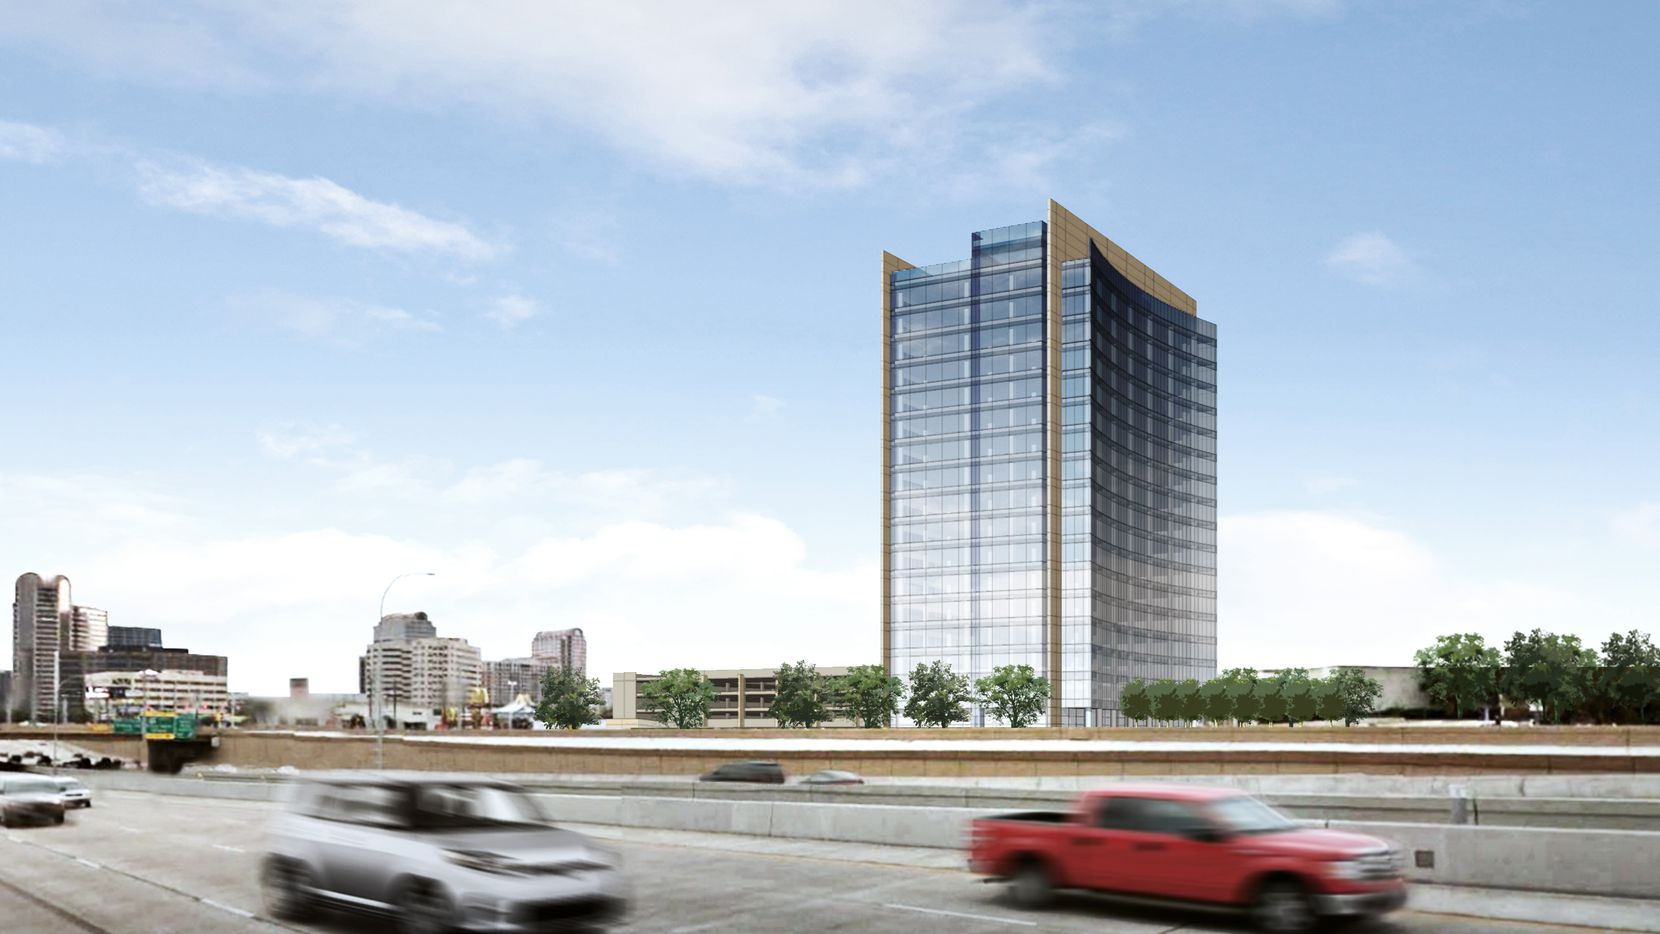 A rendering of the new office tower that Hillwood Urban, one of Ross Perot Jr. s real estate development firms, plans to build on a 20-acre property that includes part of Dallas' Valley View Mall.